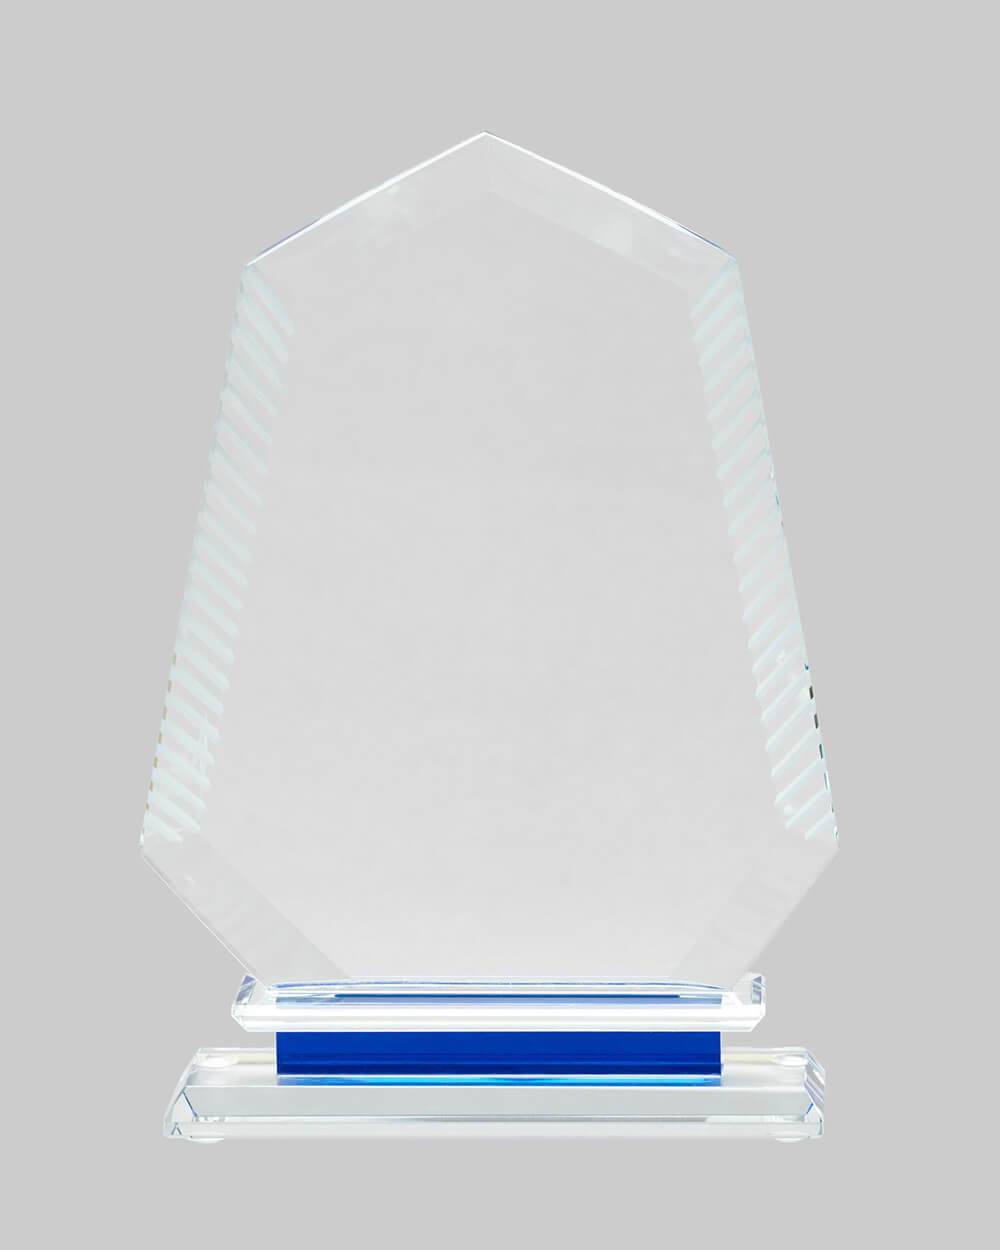 custom crystal trophy for business, sports, and achievements